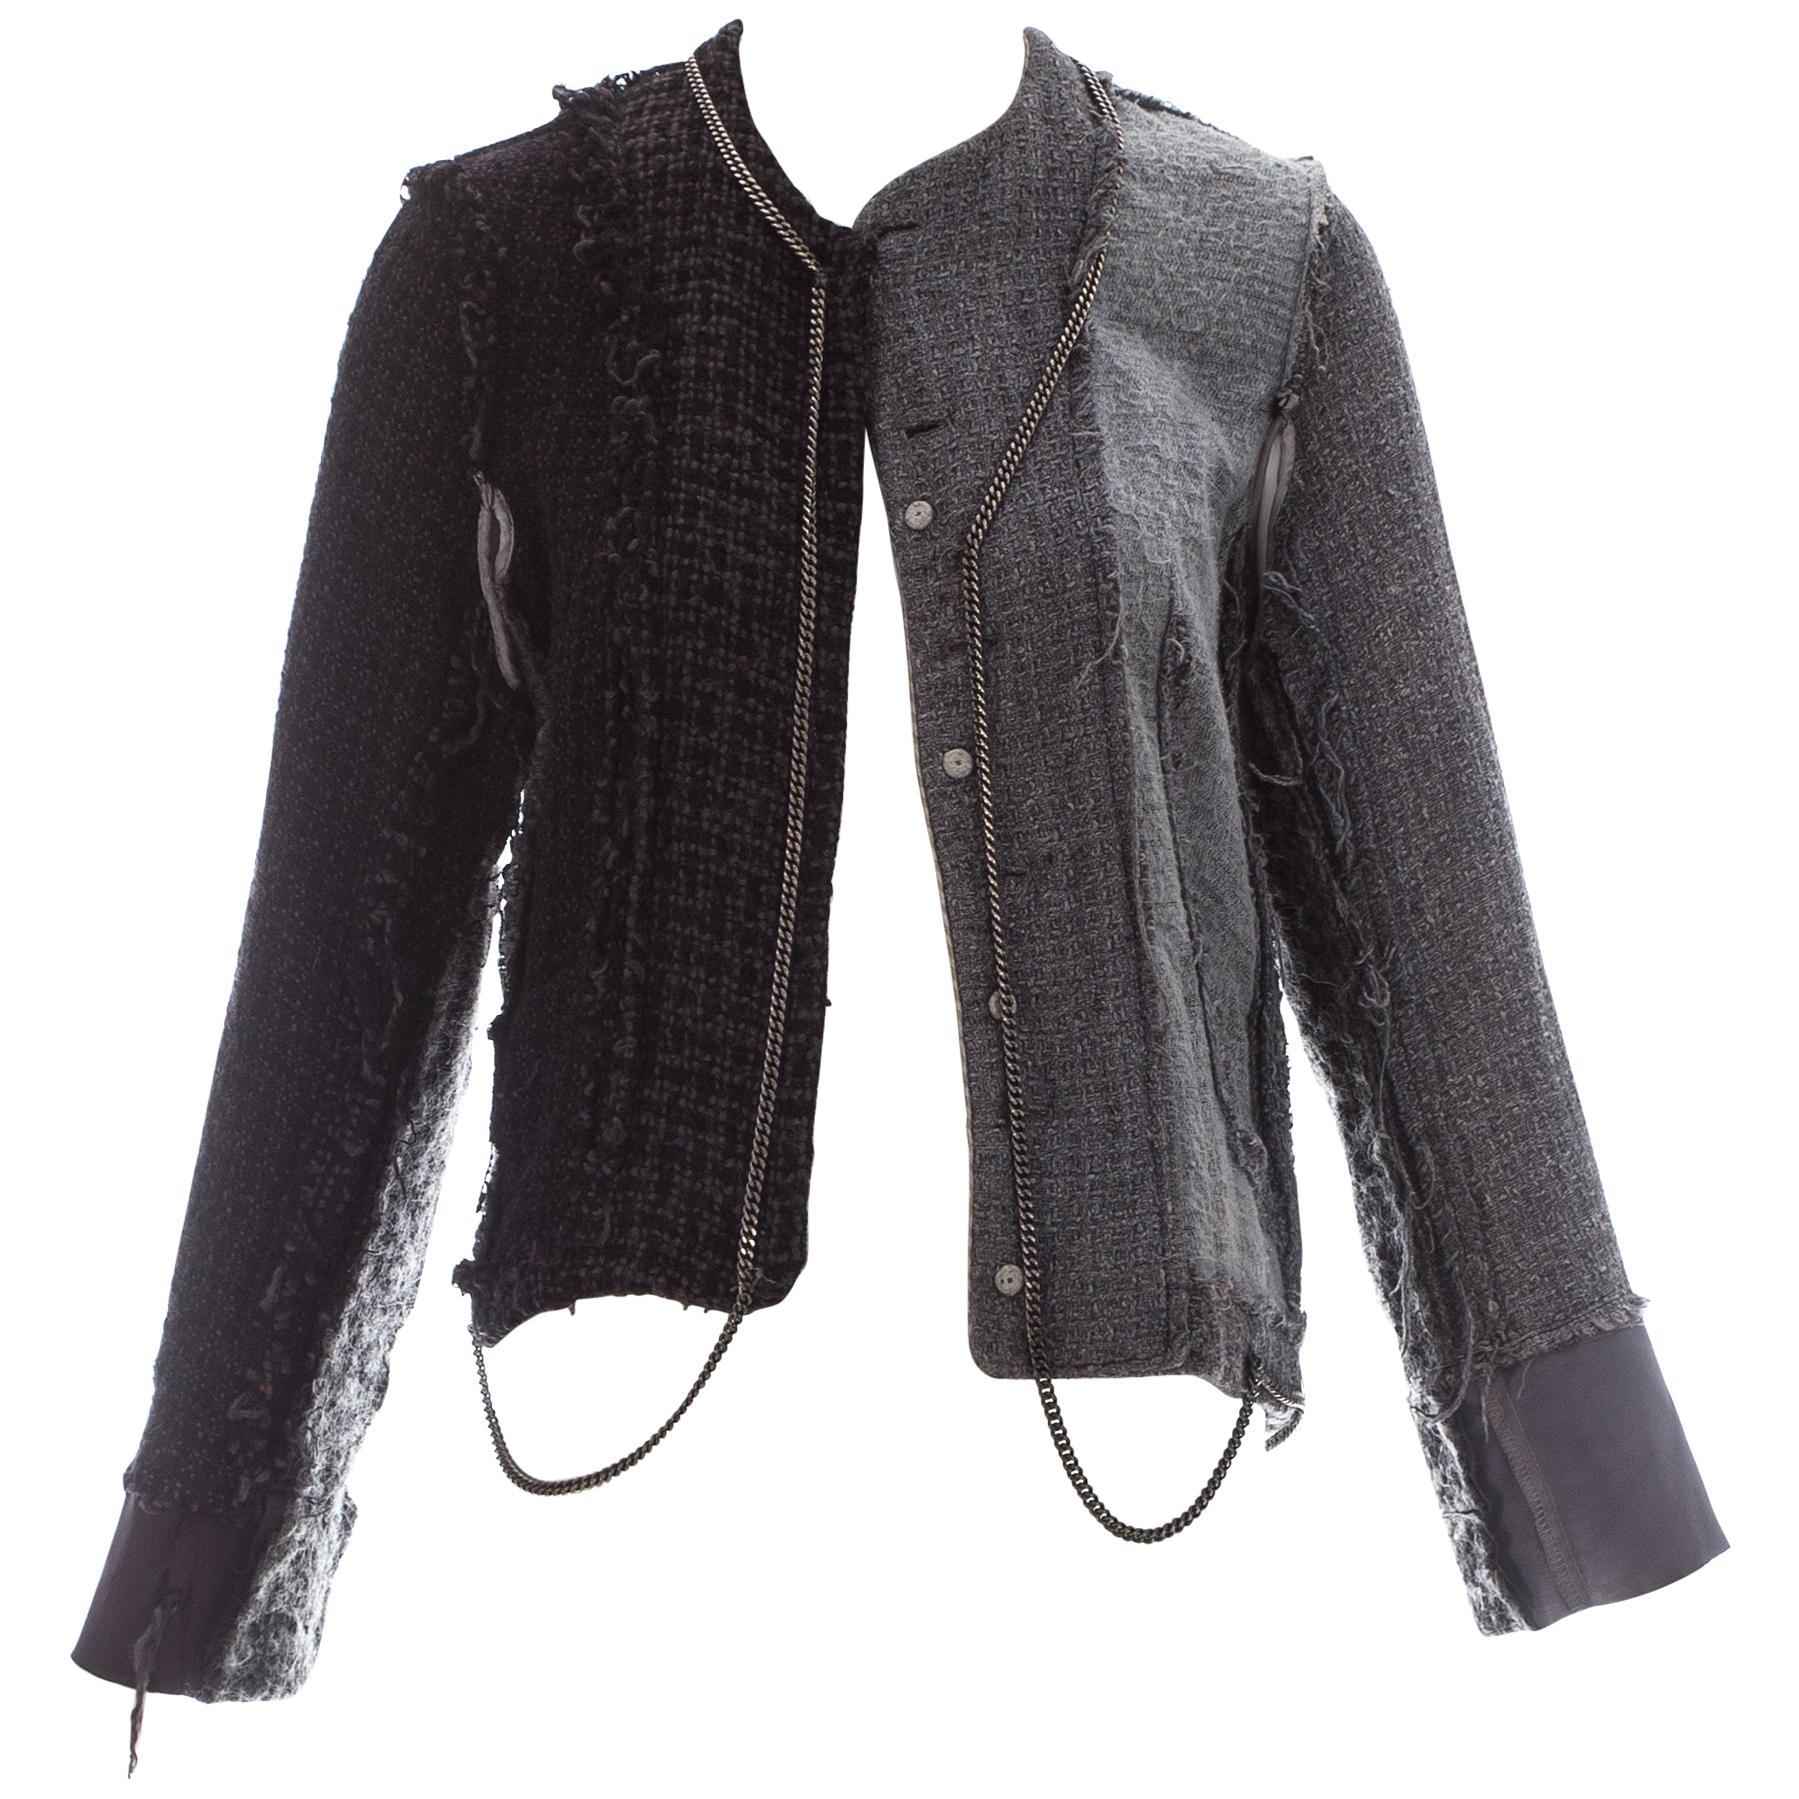 Martin Margiela grey wool tweed reconstructed jacket with chains, fw 2004